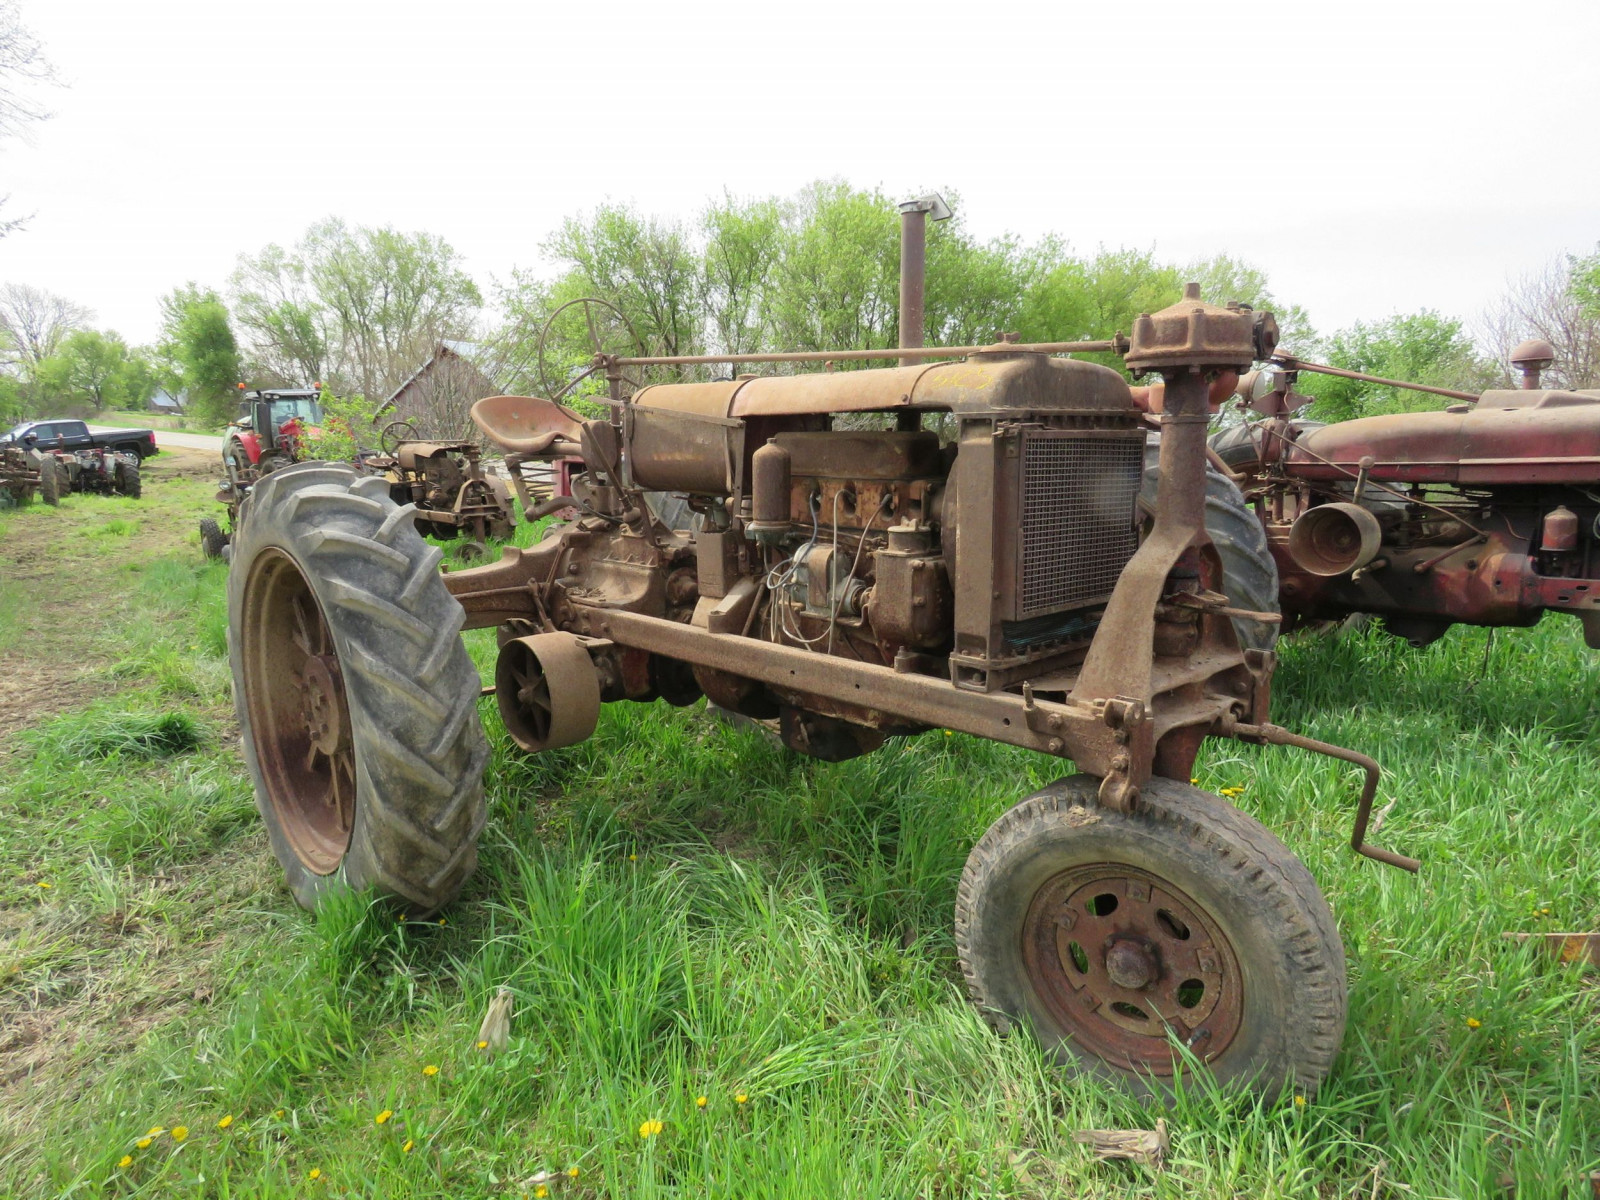 Farmall F-20 for Project or parts - Image 1